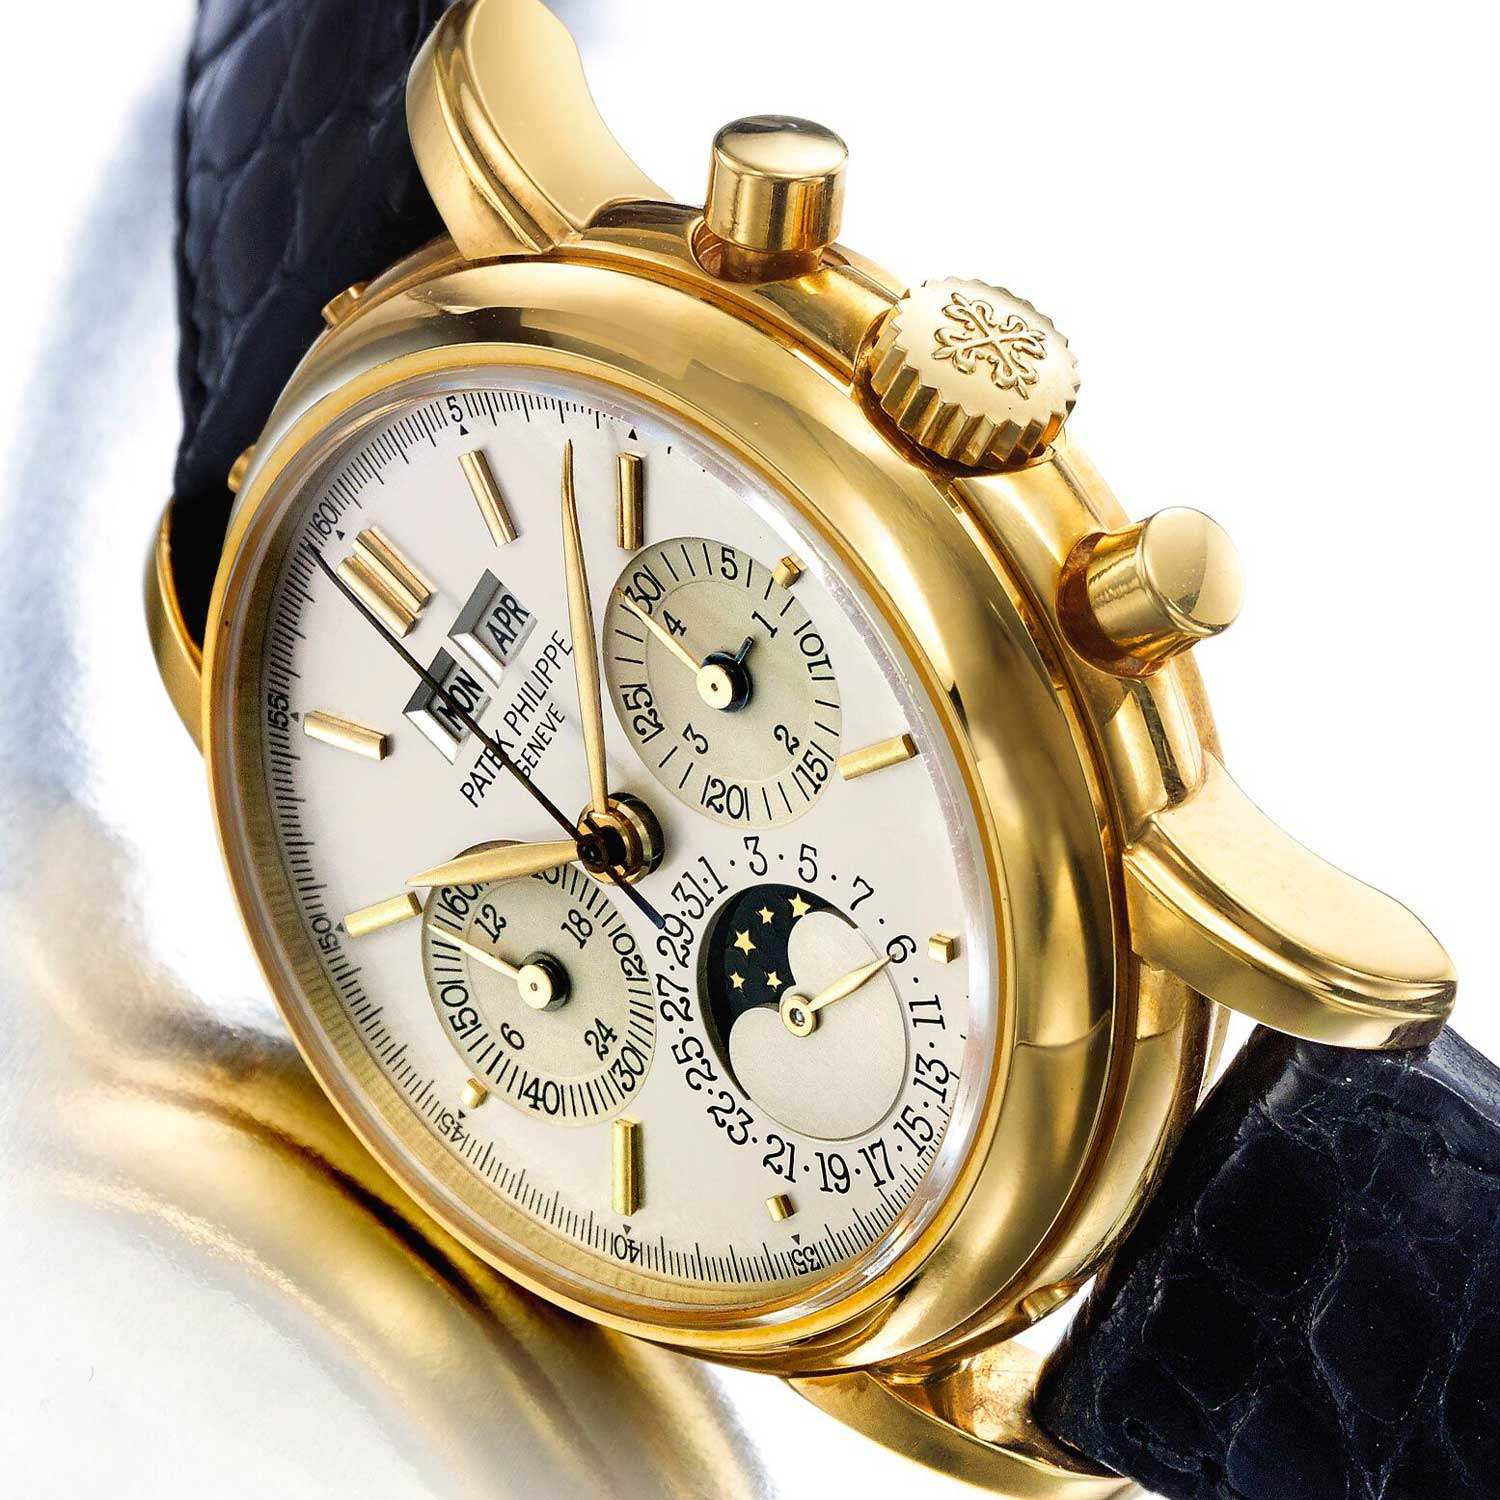 Launched in 1985 by Patek Philippe, the 3970 perpetual calendar chronograph marked the return of the Lemania 2310/2320, now elevated to the highest rung of watchmaking, seen here is a first series 3970, exclusively made in yellow gold with baton hour markers, most easily identified by its snap caseback that meant that this watch was not water-resistant to any degree (Image: sothebys.com)